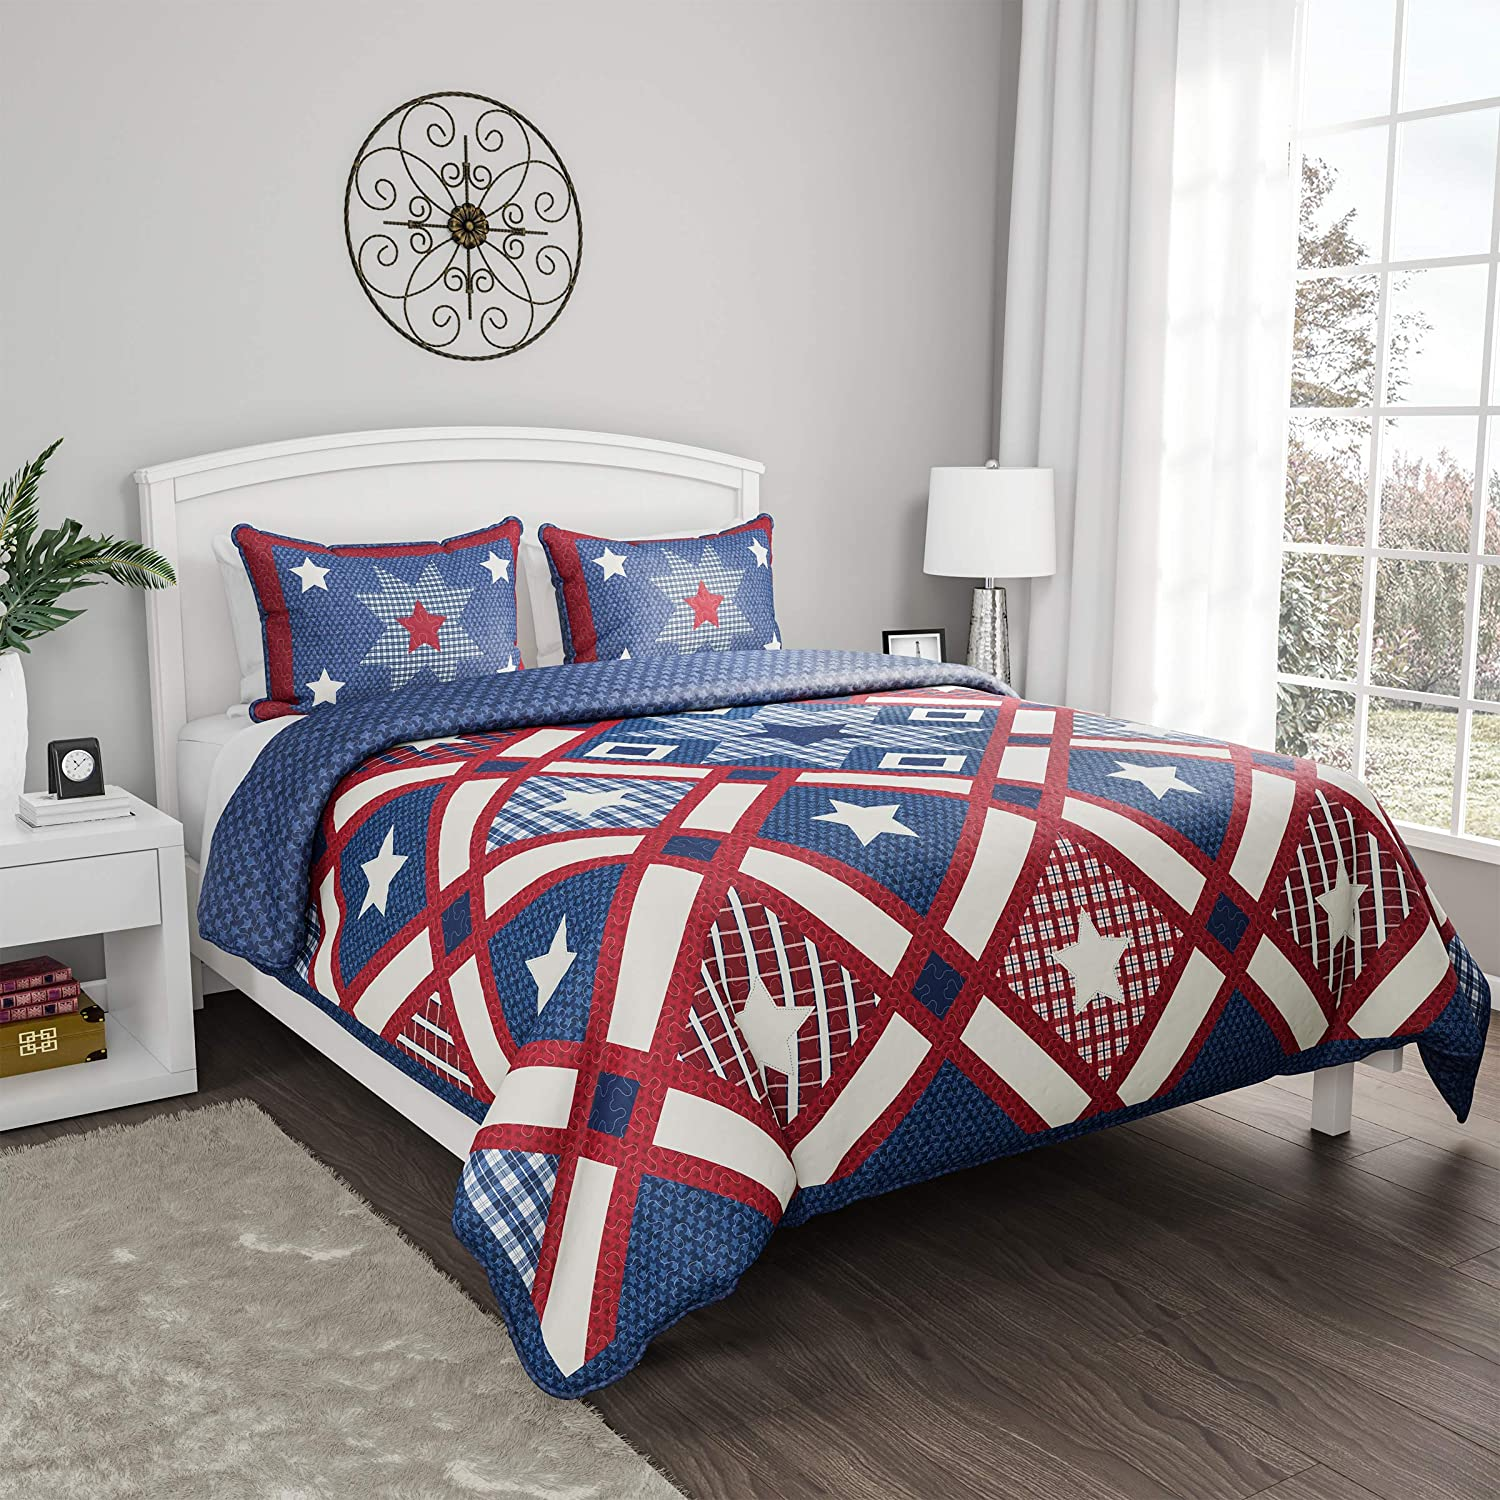 Lavish Home Collection 3-Piece Quilt and Bed Set – Hypoallergenic Microfiber Homestead Patriotic Americana Print All-Season Blanket with Sham (King)